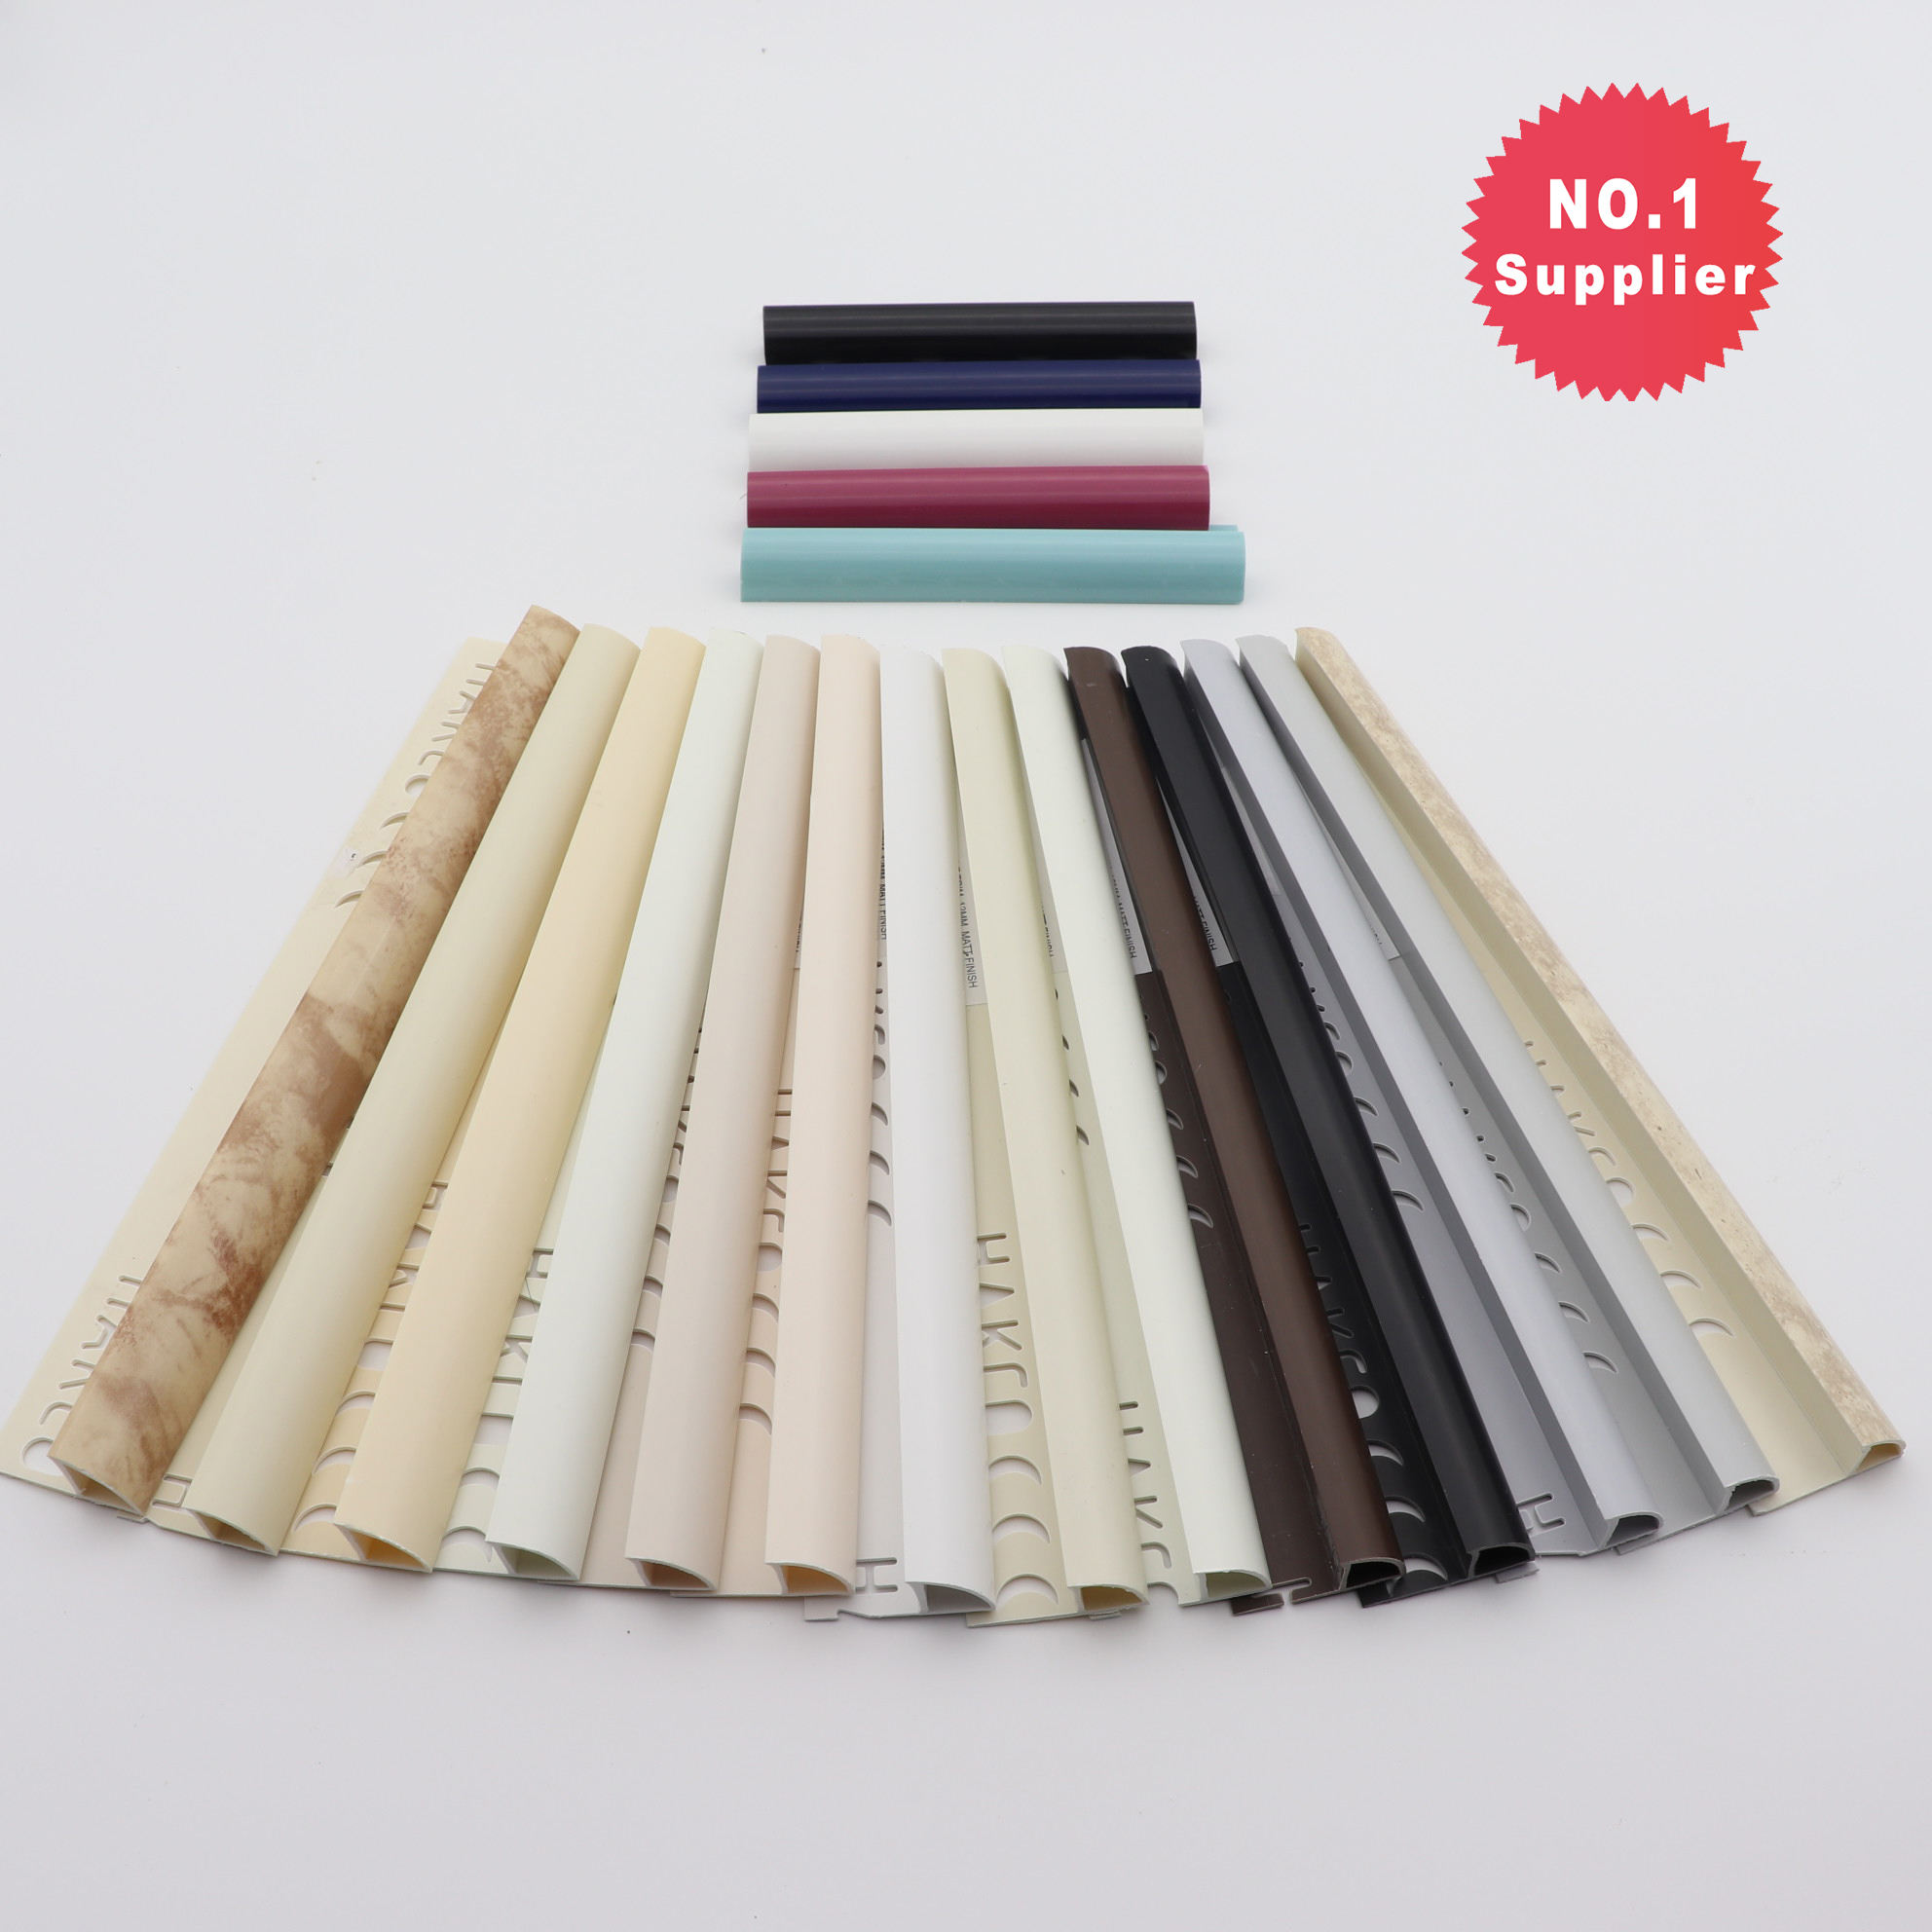 Yunte High Quality L Round Marble Dubai Rubber Edge Finishing Plastic Corners Strip 10mm PVC Curved Pencil Ceramic Tile Trim